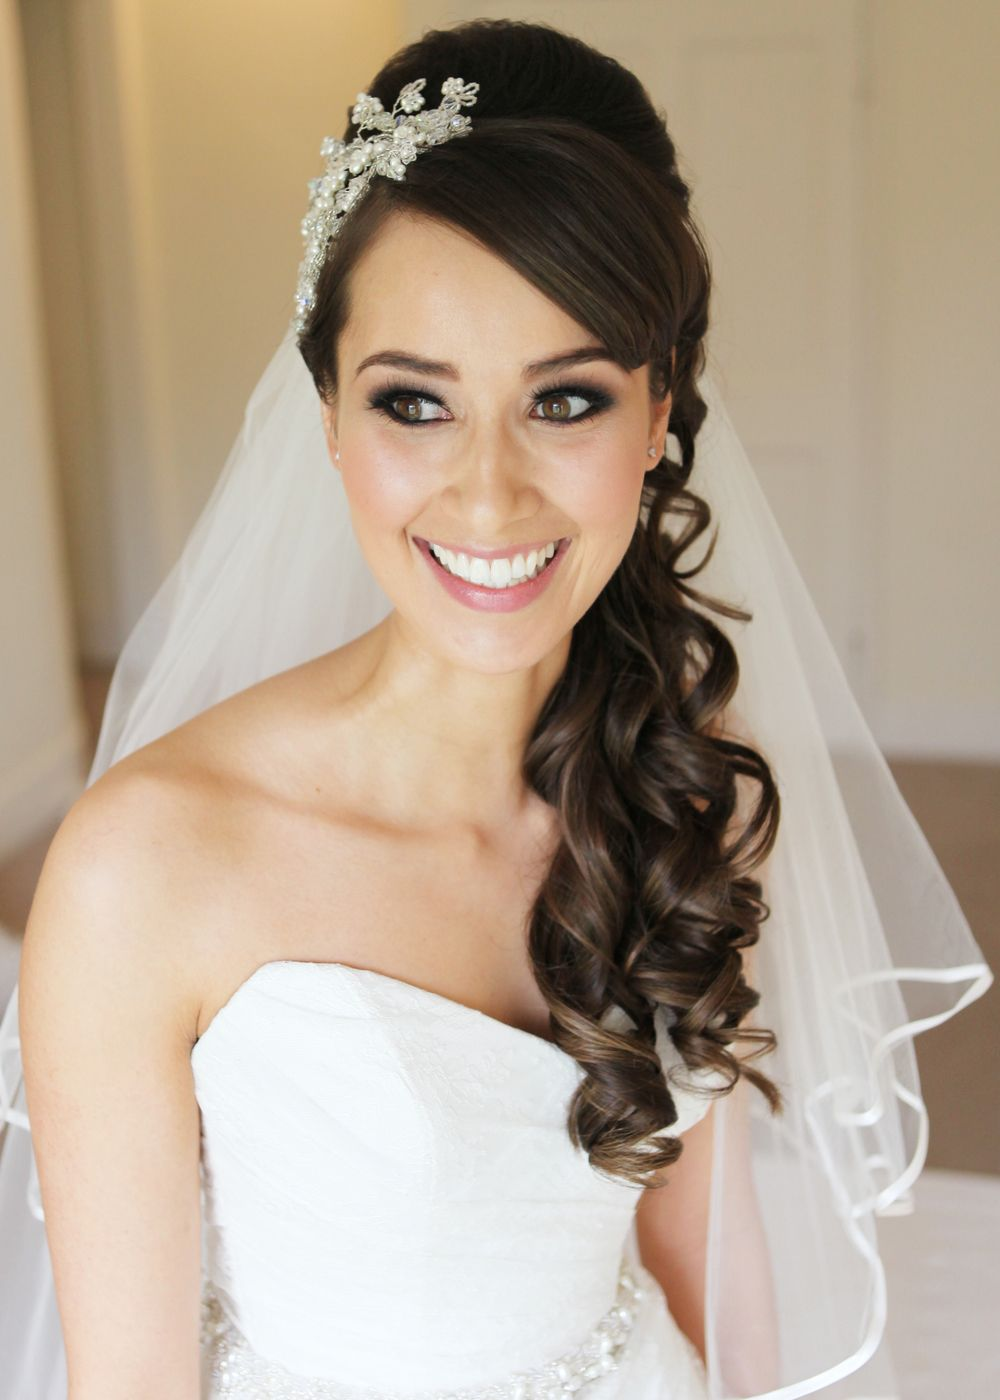 Pin By Sprinkles Beauty Shoppe On Mr Mrs Penson 10 03 15 Wedding Hairstyles For Long Hair Bride Hairstyles Bridal Hair Veil